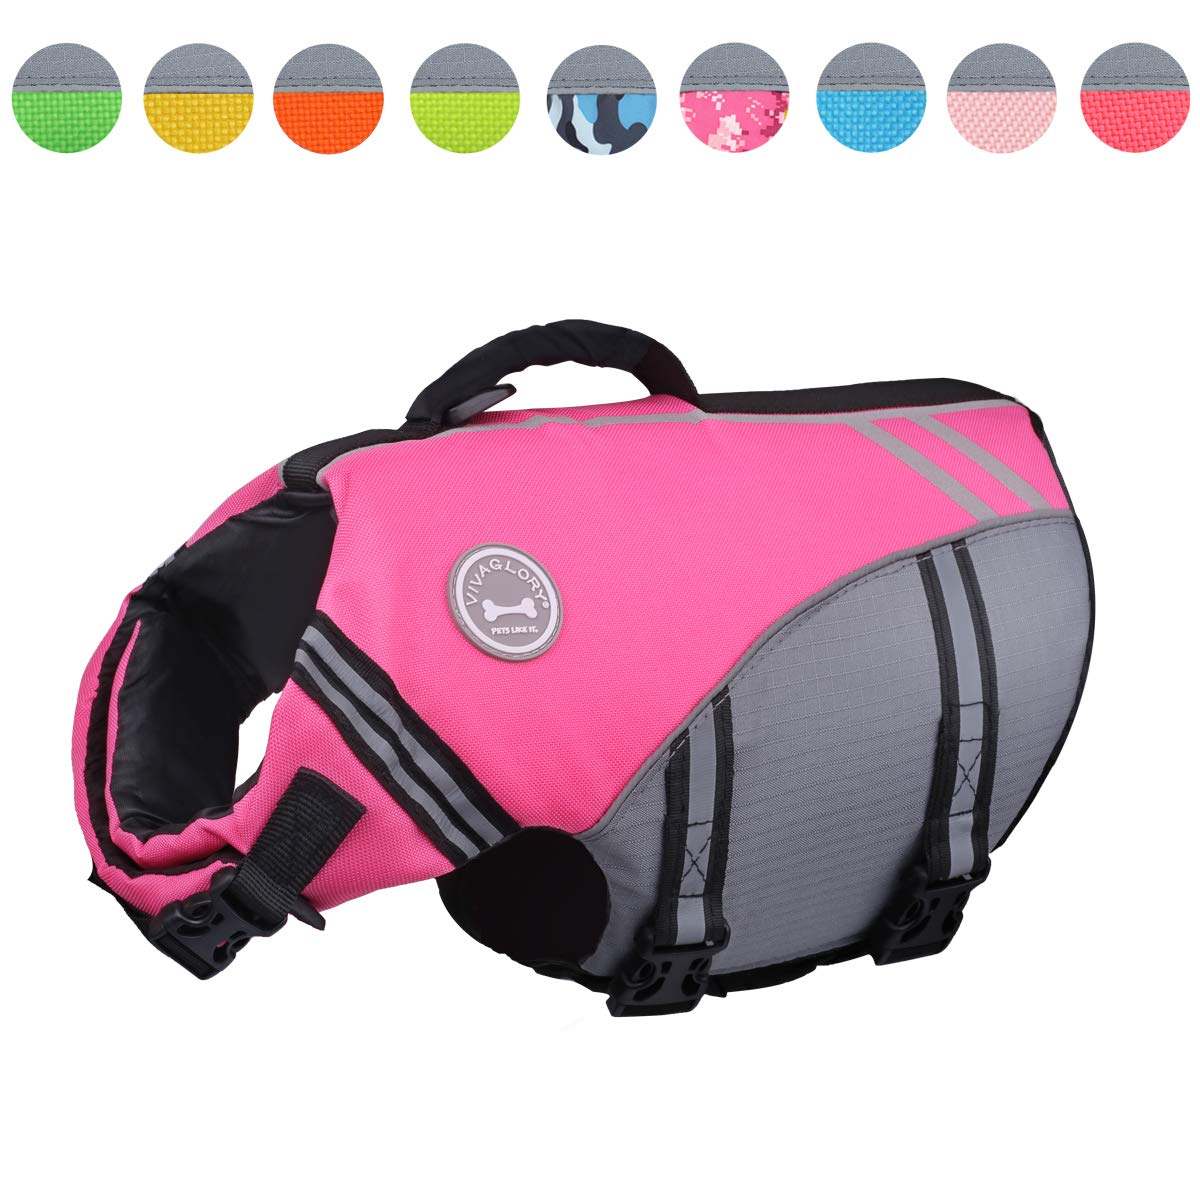 Vivaglory New Sports Style Ripstop Dog Life Jacket with Superior Buoyancy & Rescue Handle, Pink, L by Vivaglory